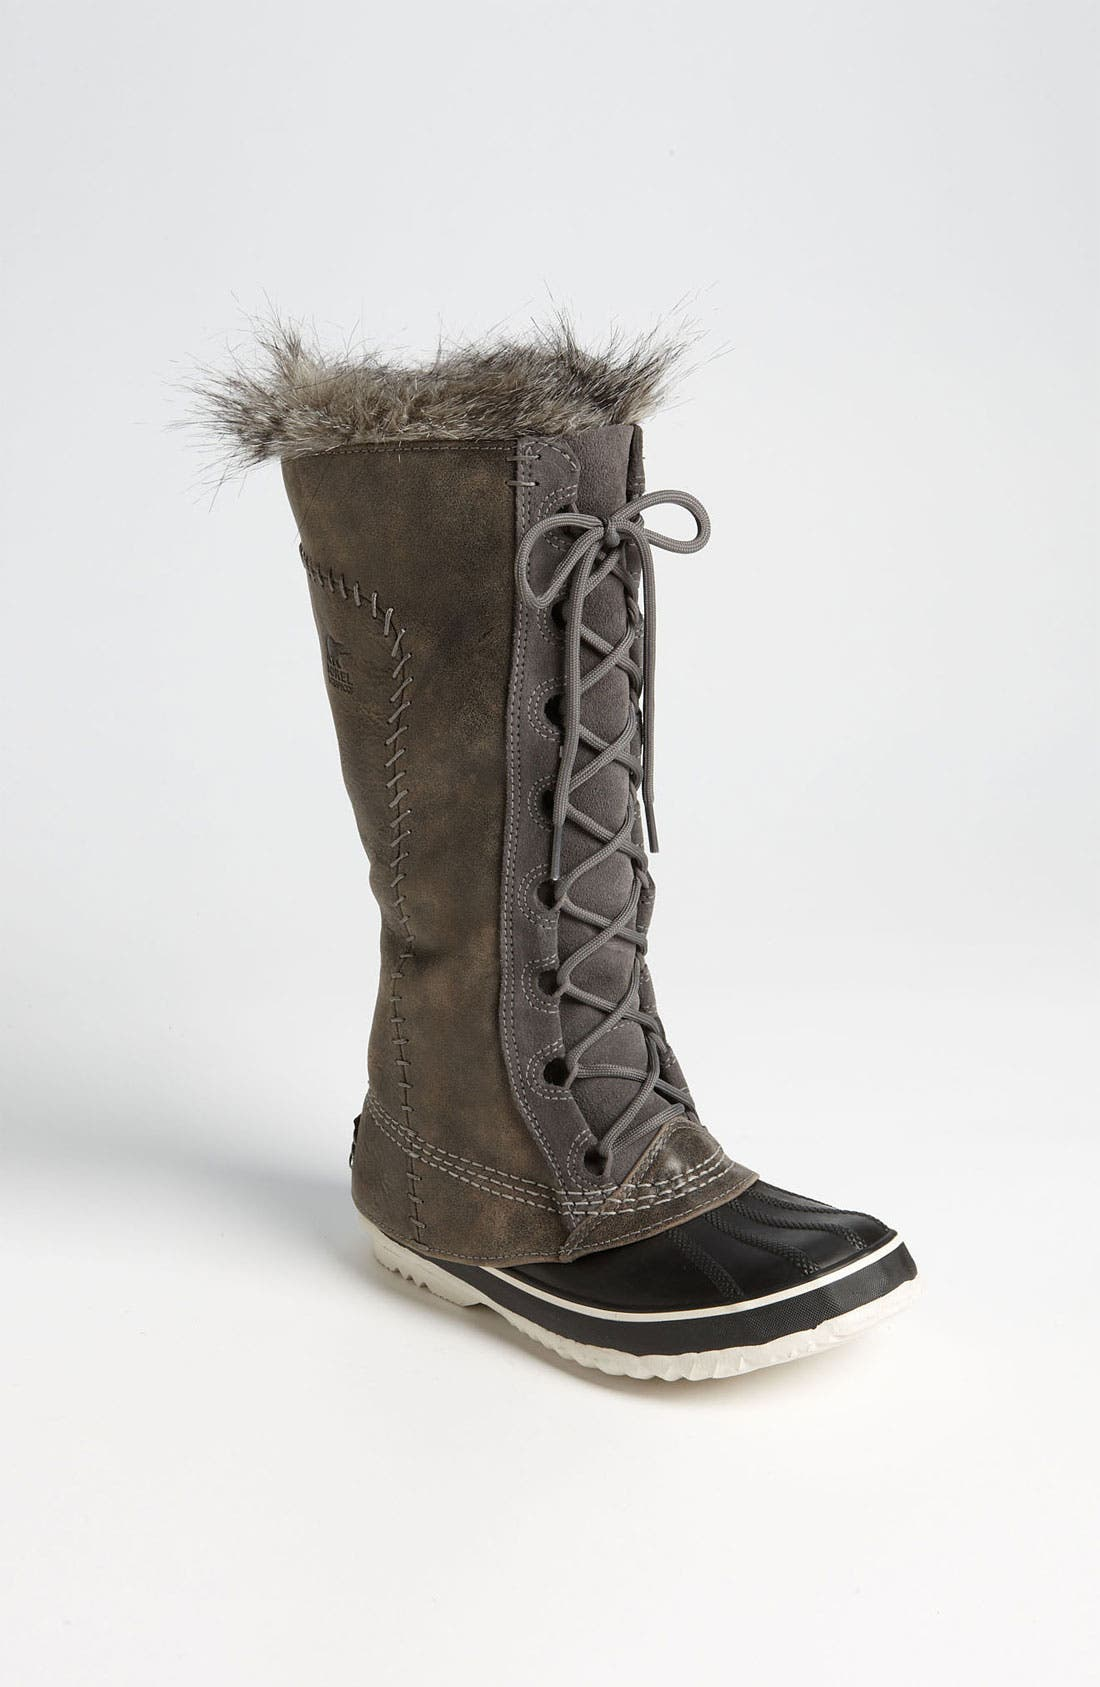 Main Image - Sorel 'Cate the Great' Boot